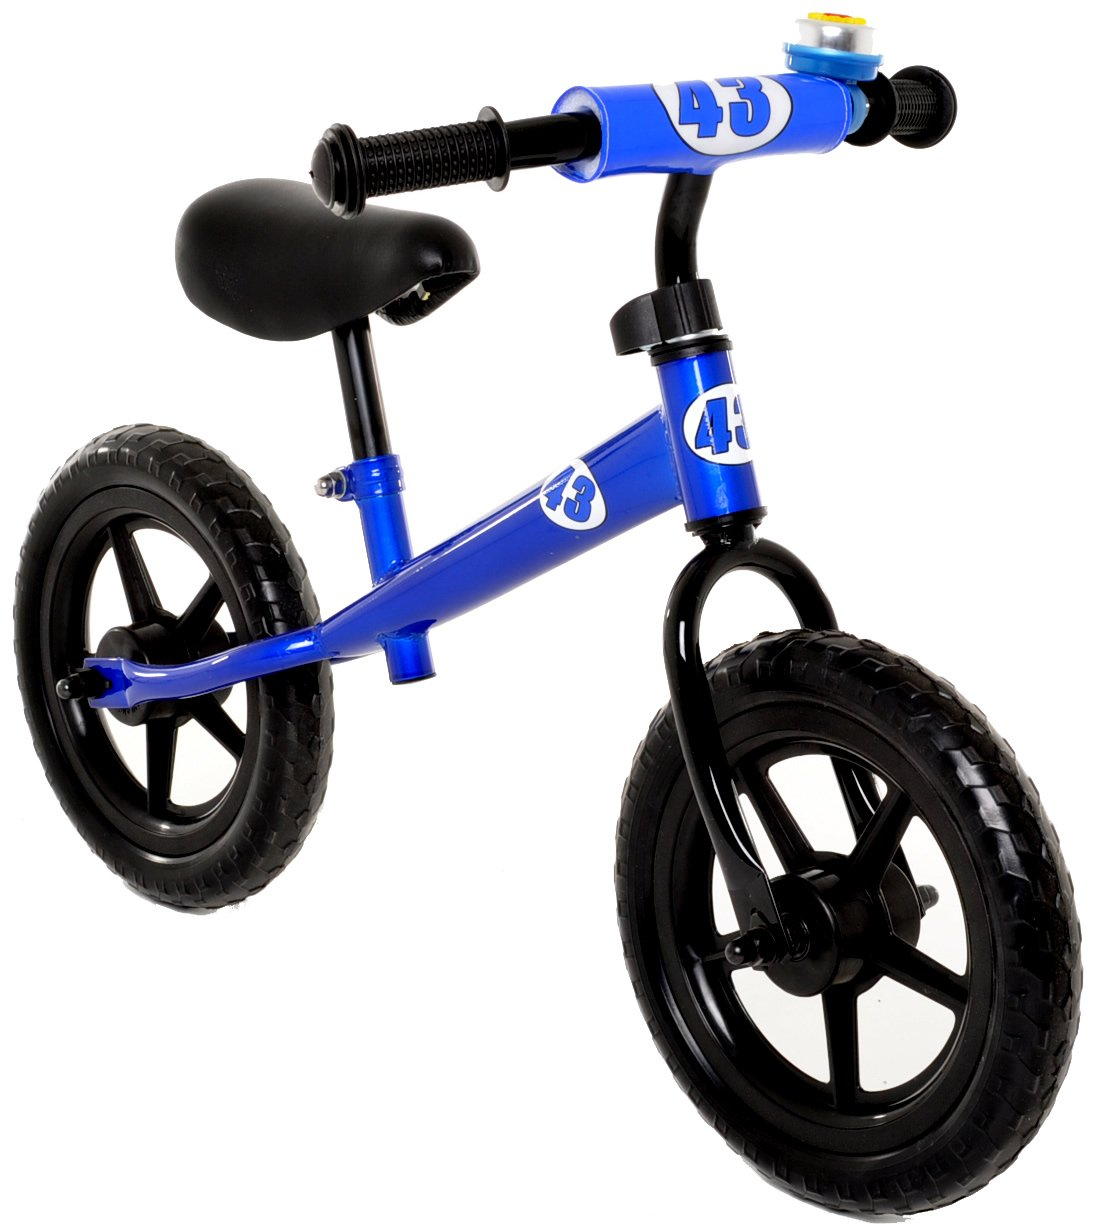 Top 11 Best Balance Bikes for Toddlers Reviews in 2020 11